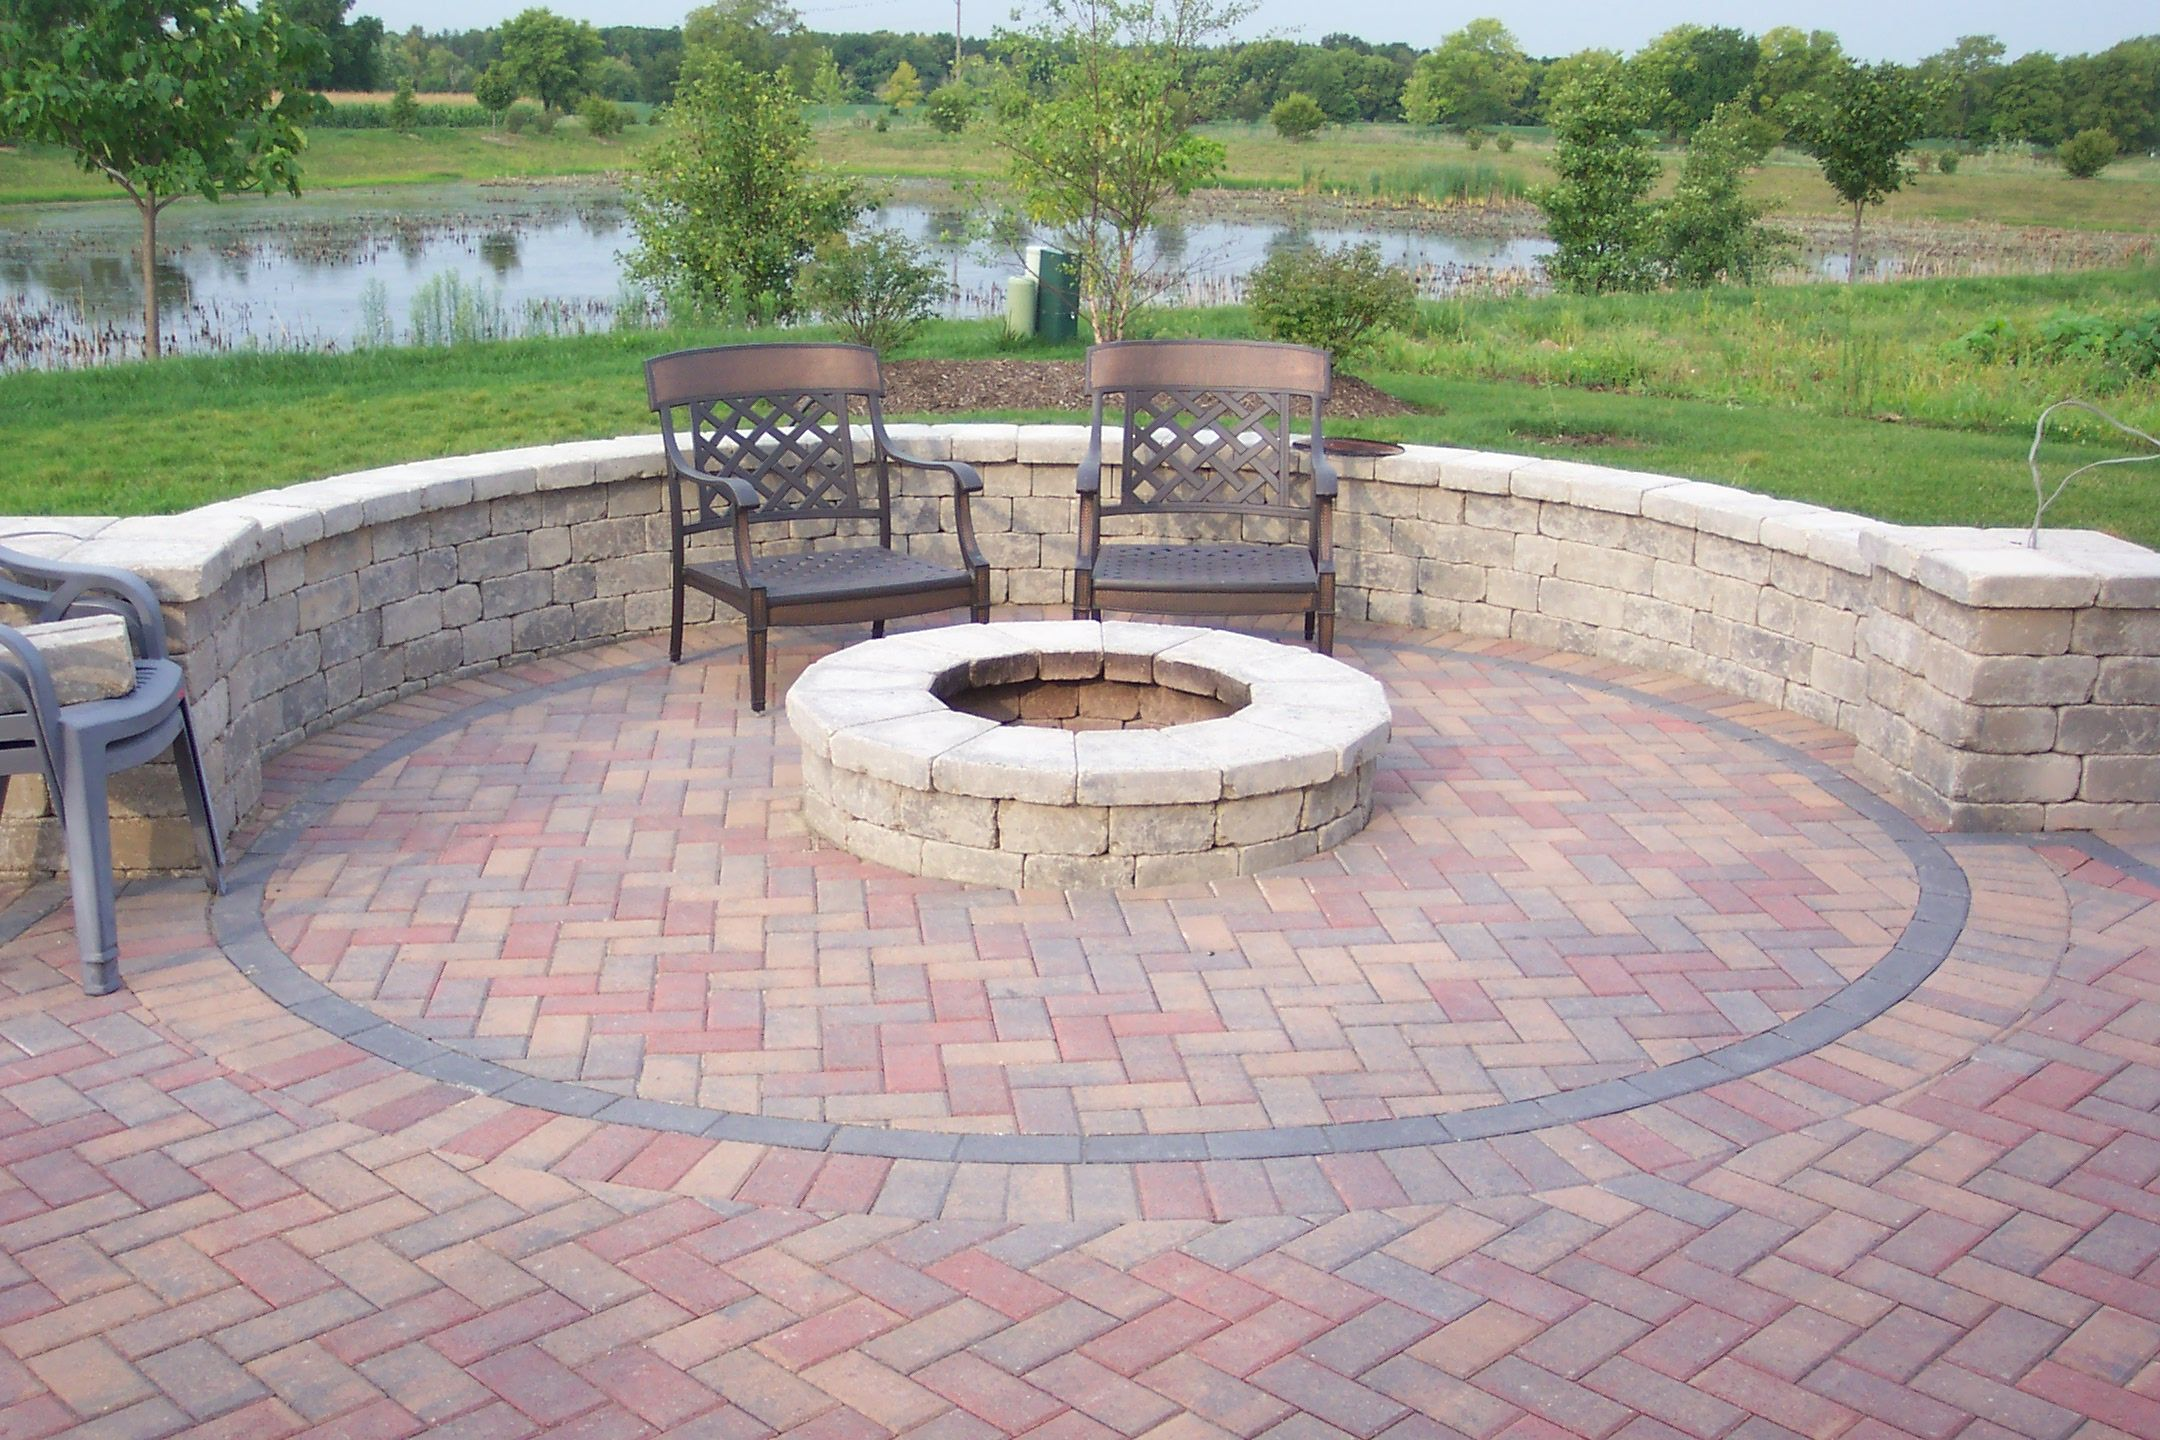 Patio Design Ideas With Fire Pits garden design with outdoor nice round fire pit for modern outdoor patio ideas with garden 1000 Images About Brick Patio Ideas On Pinterest Brick Fire Pits Fire Pits And Brick Patios